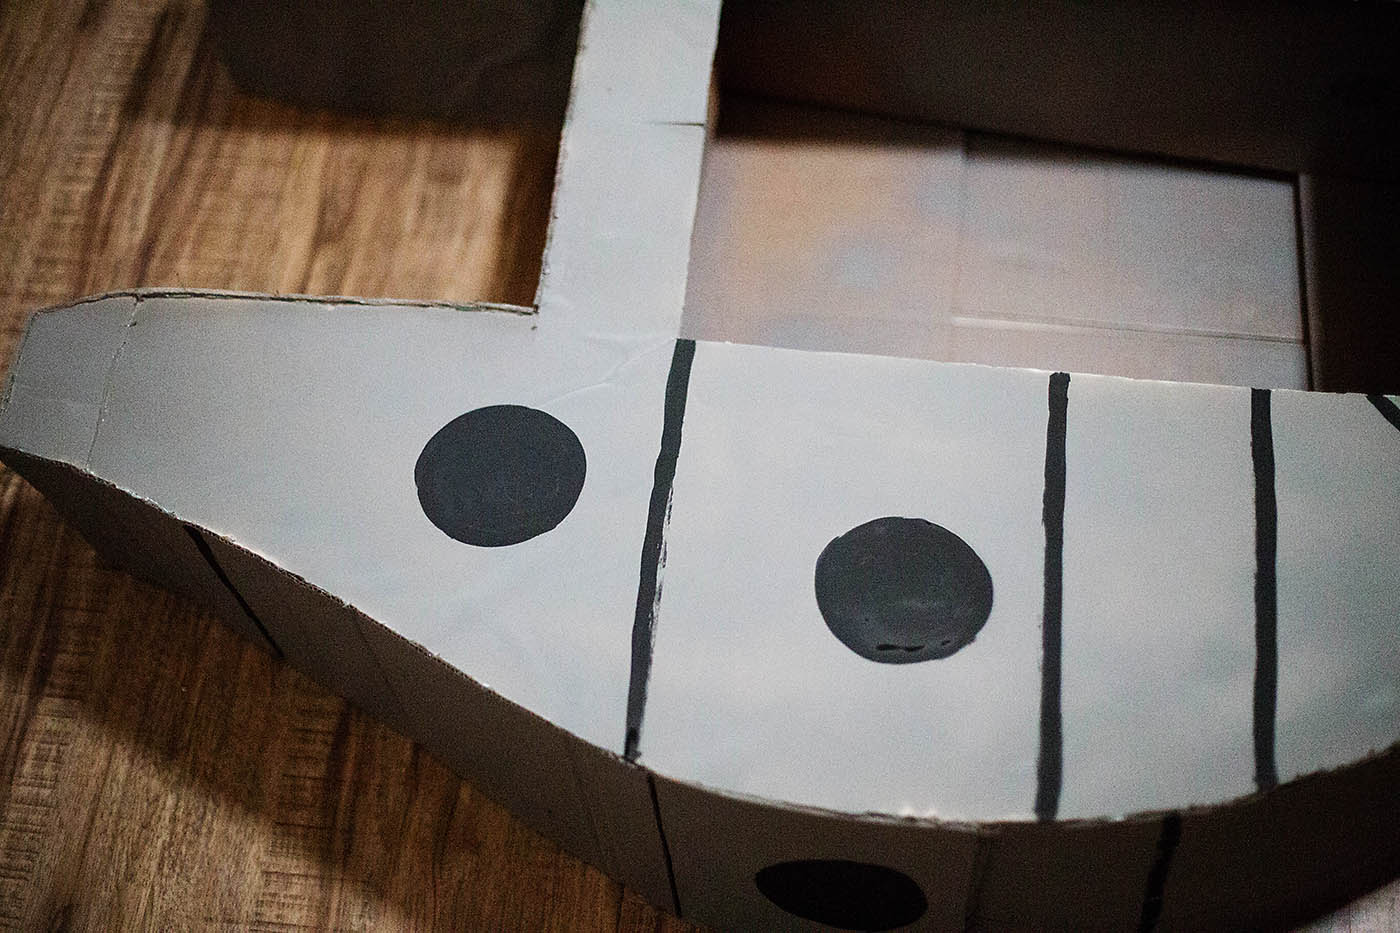 How to build a cardboard Millennium Falcon